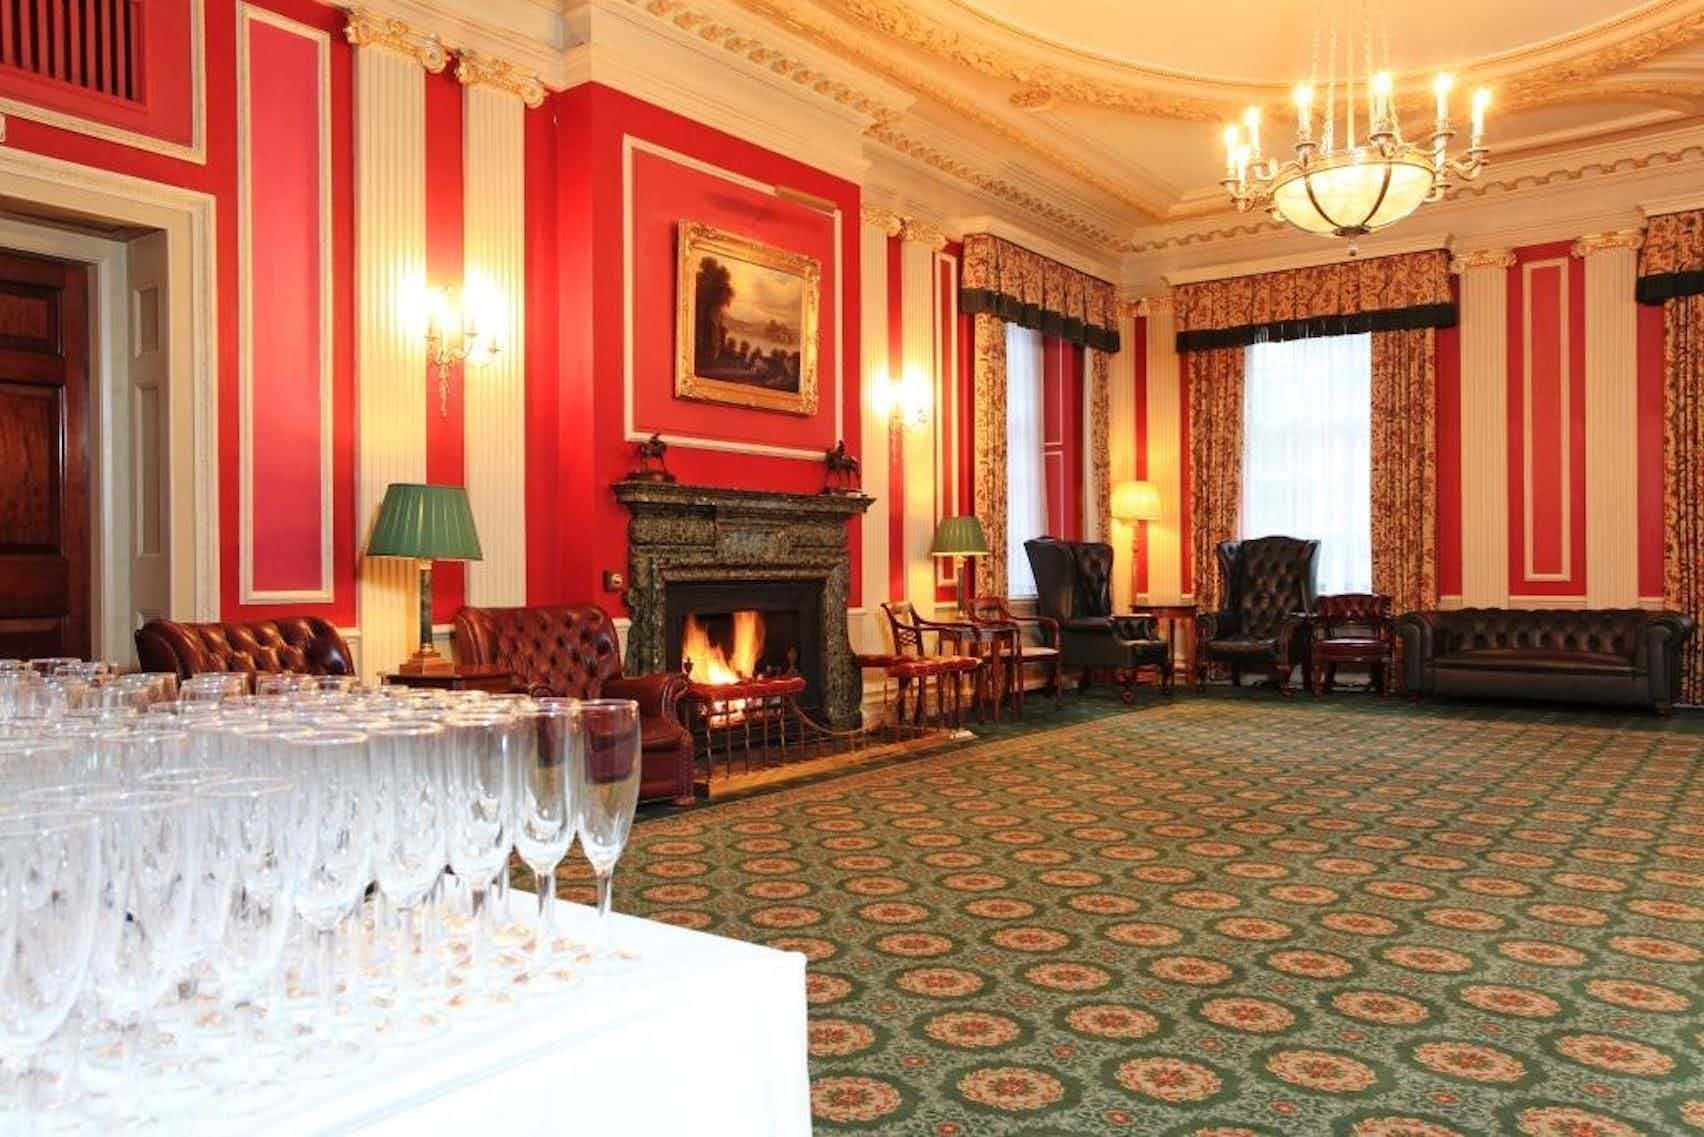 Morrison Room, The Caledonian Club